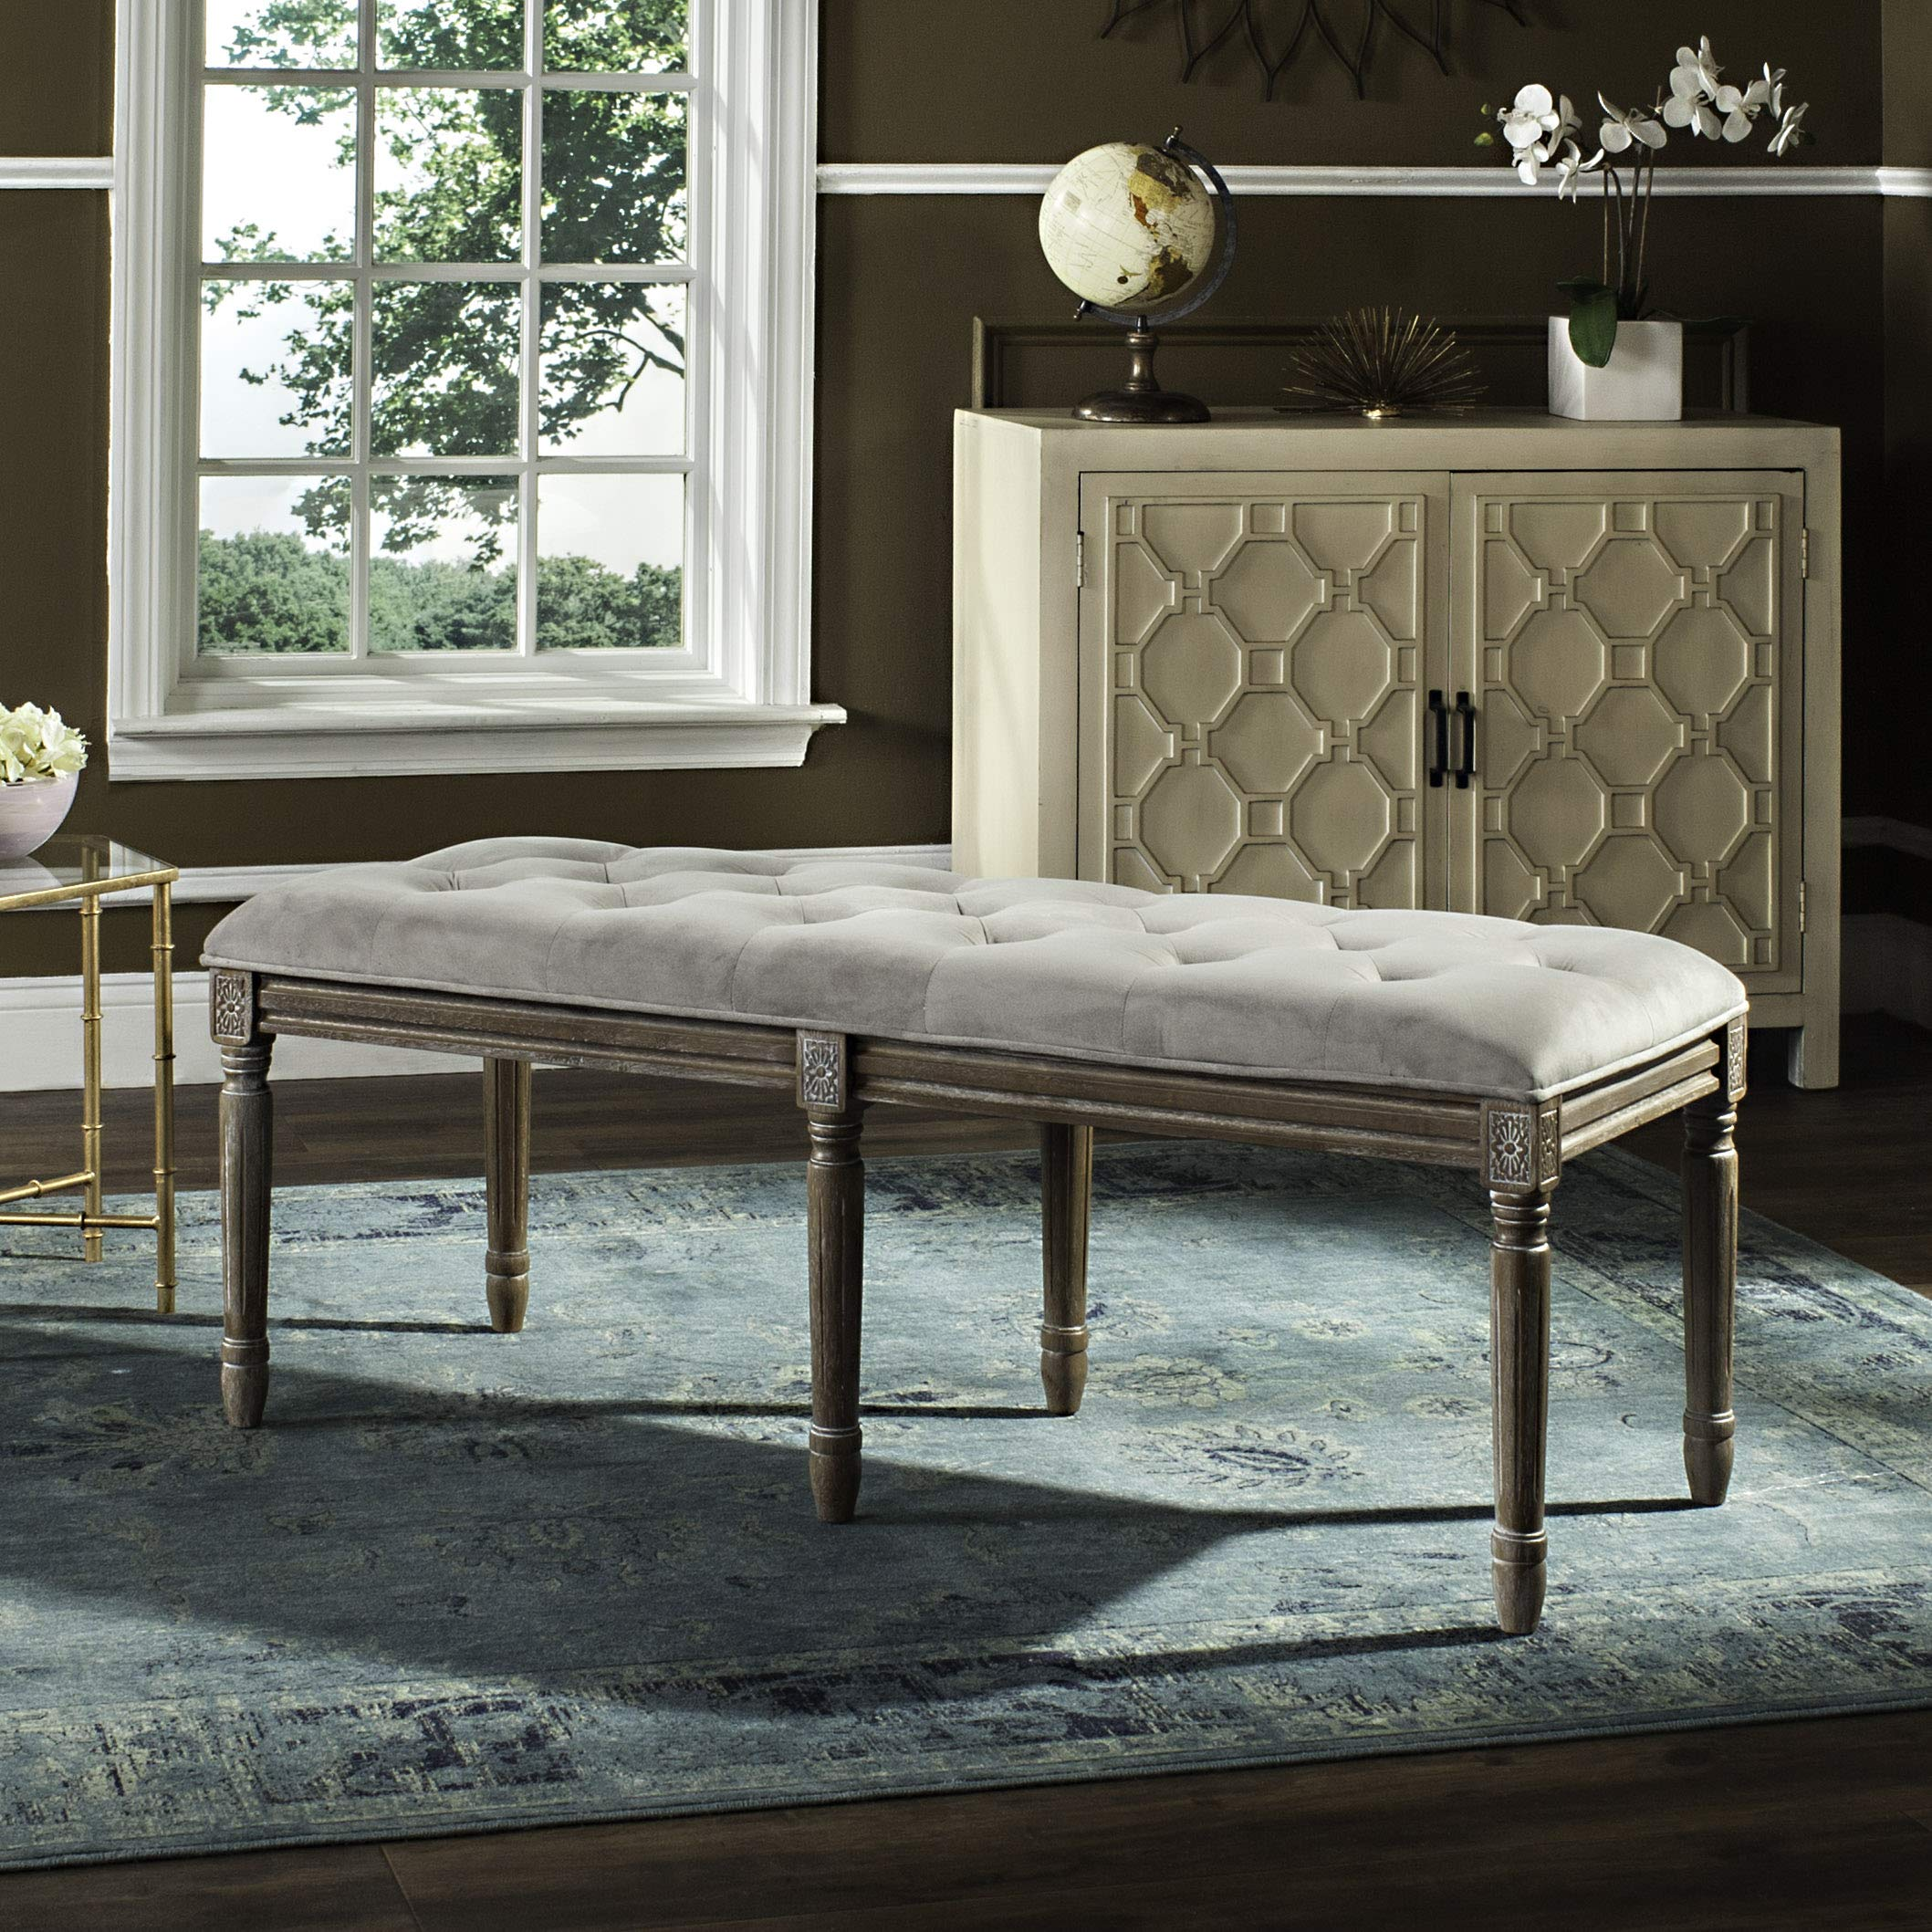 Safavieh Home Collection Rocha French Brasserie Tufted Grey and Rustic Oak 19-inch Wood Bench by Safavieh (Image #1)